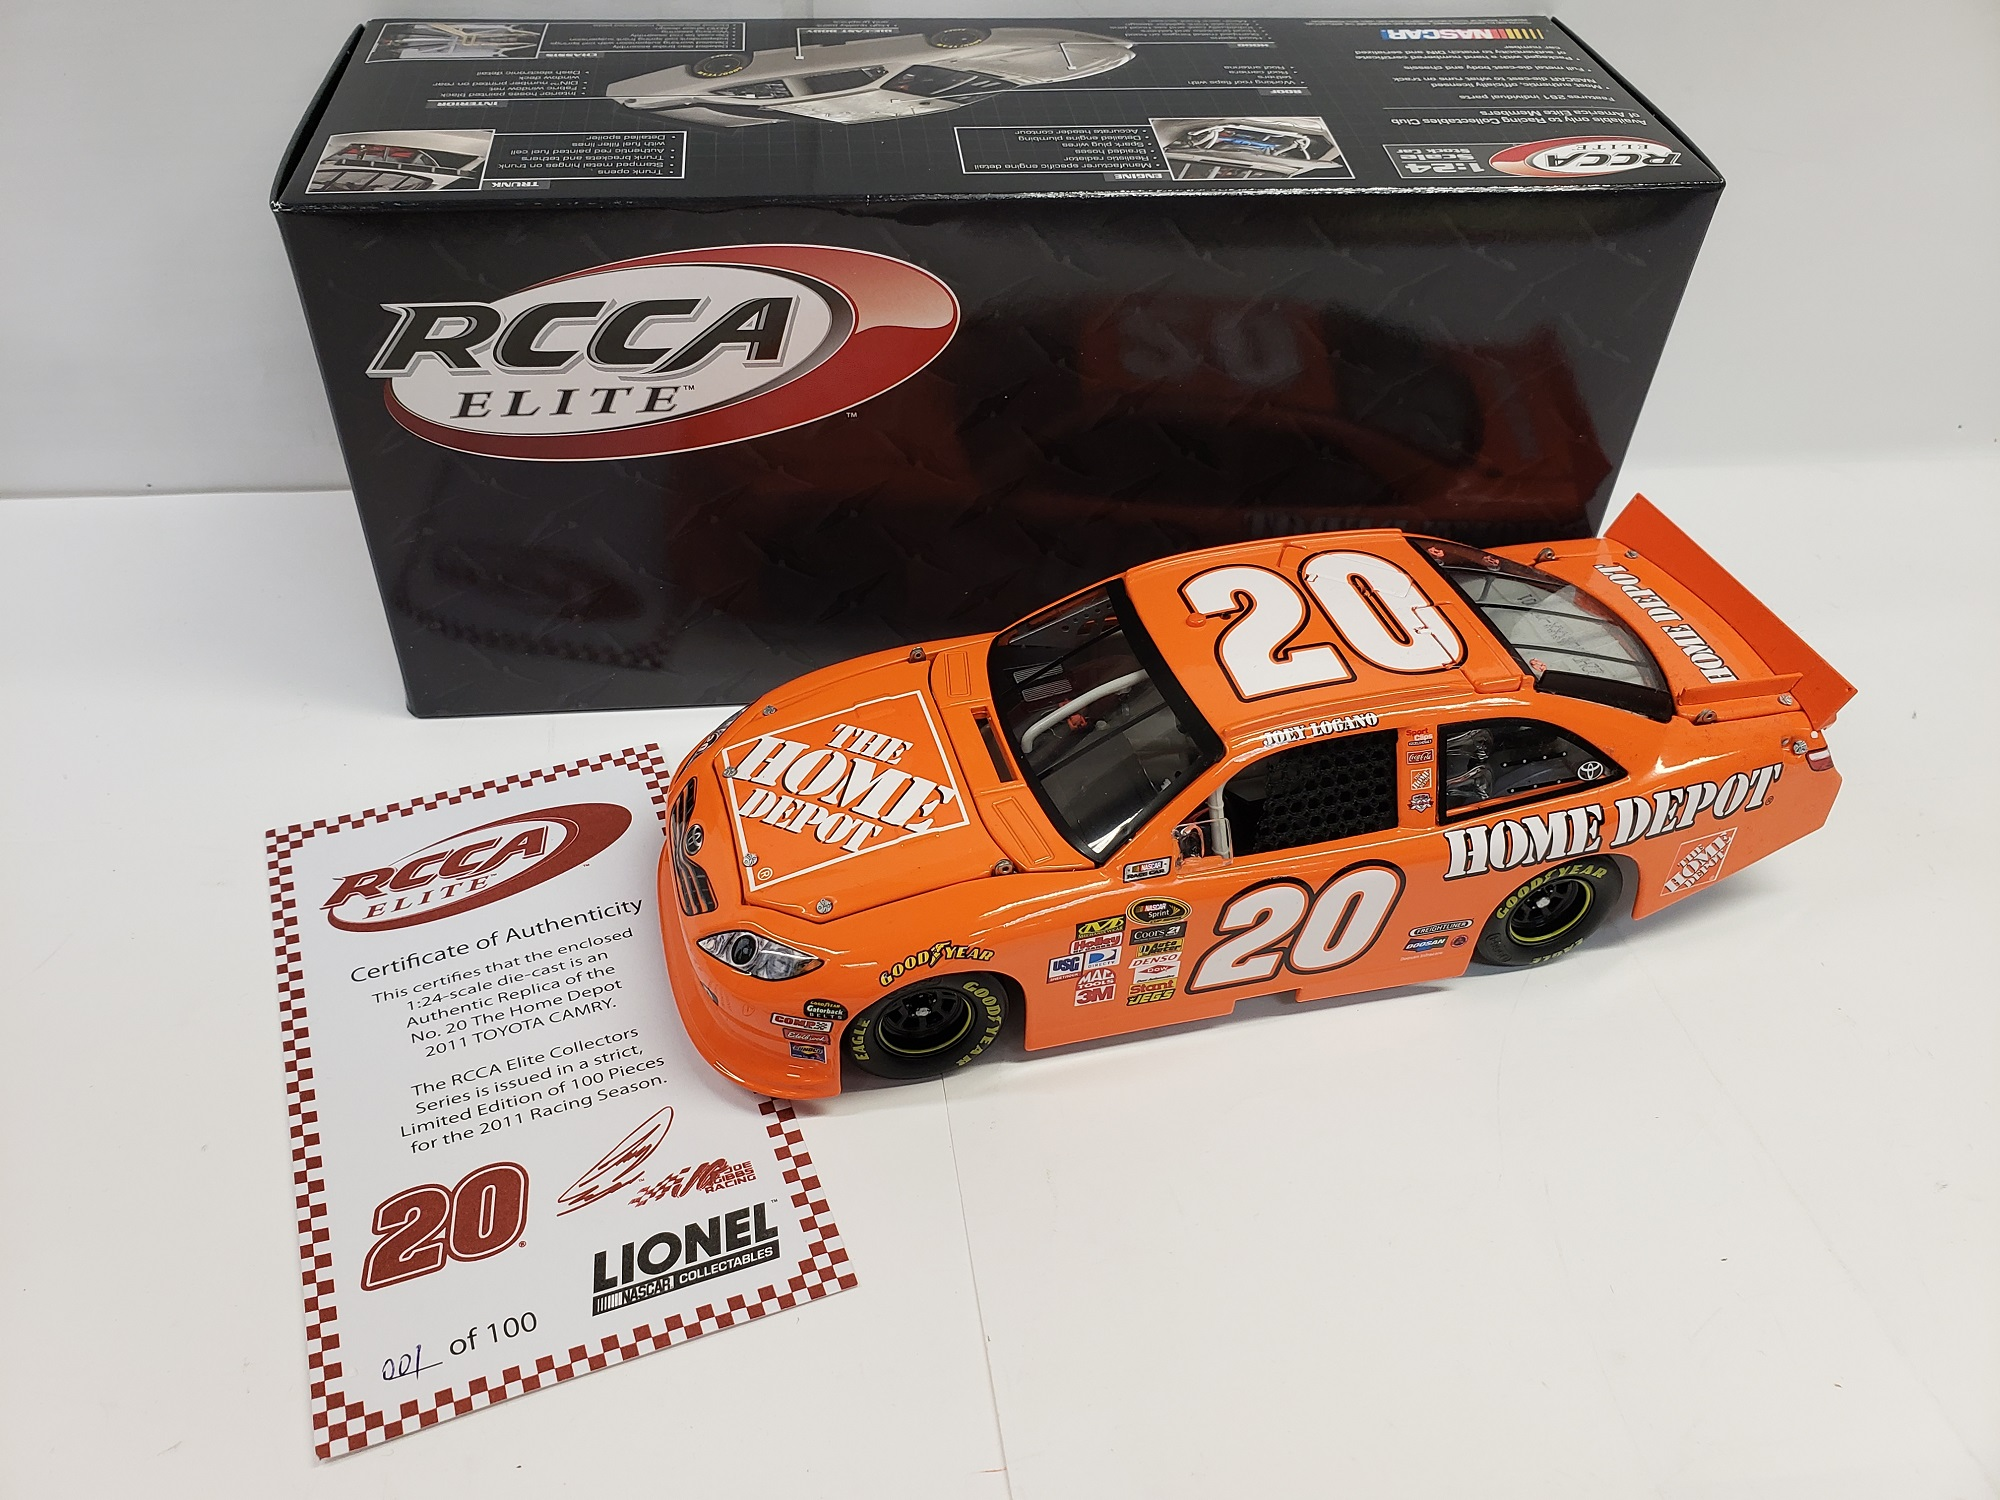 2011 Joey Logano The Home Depot RCCA Elite